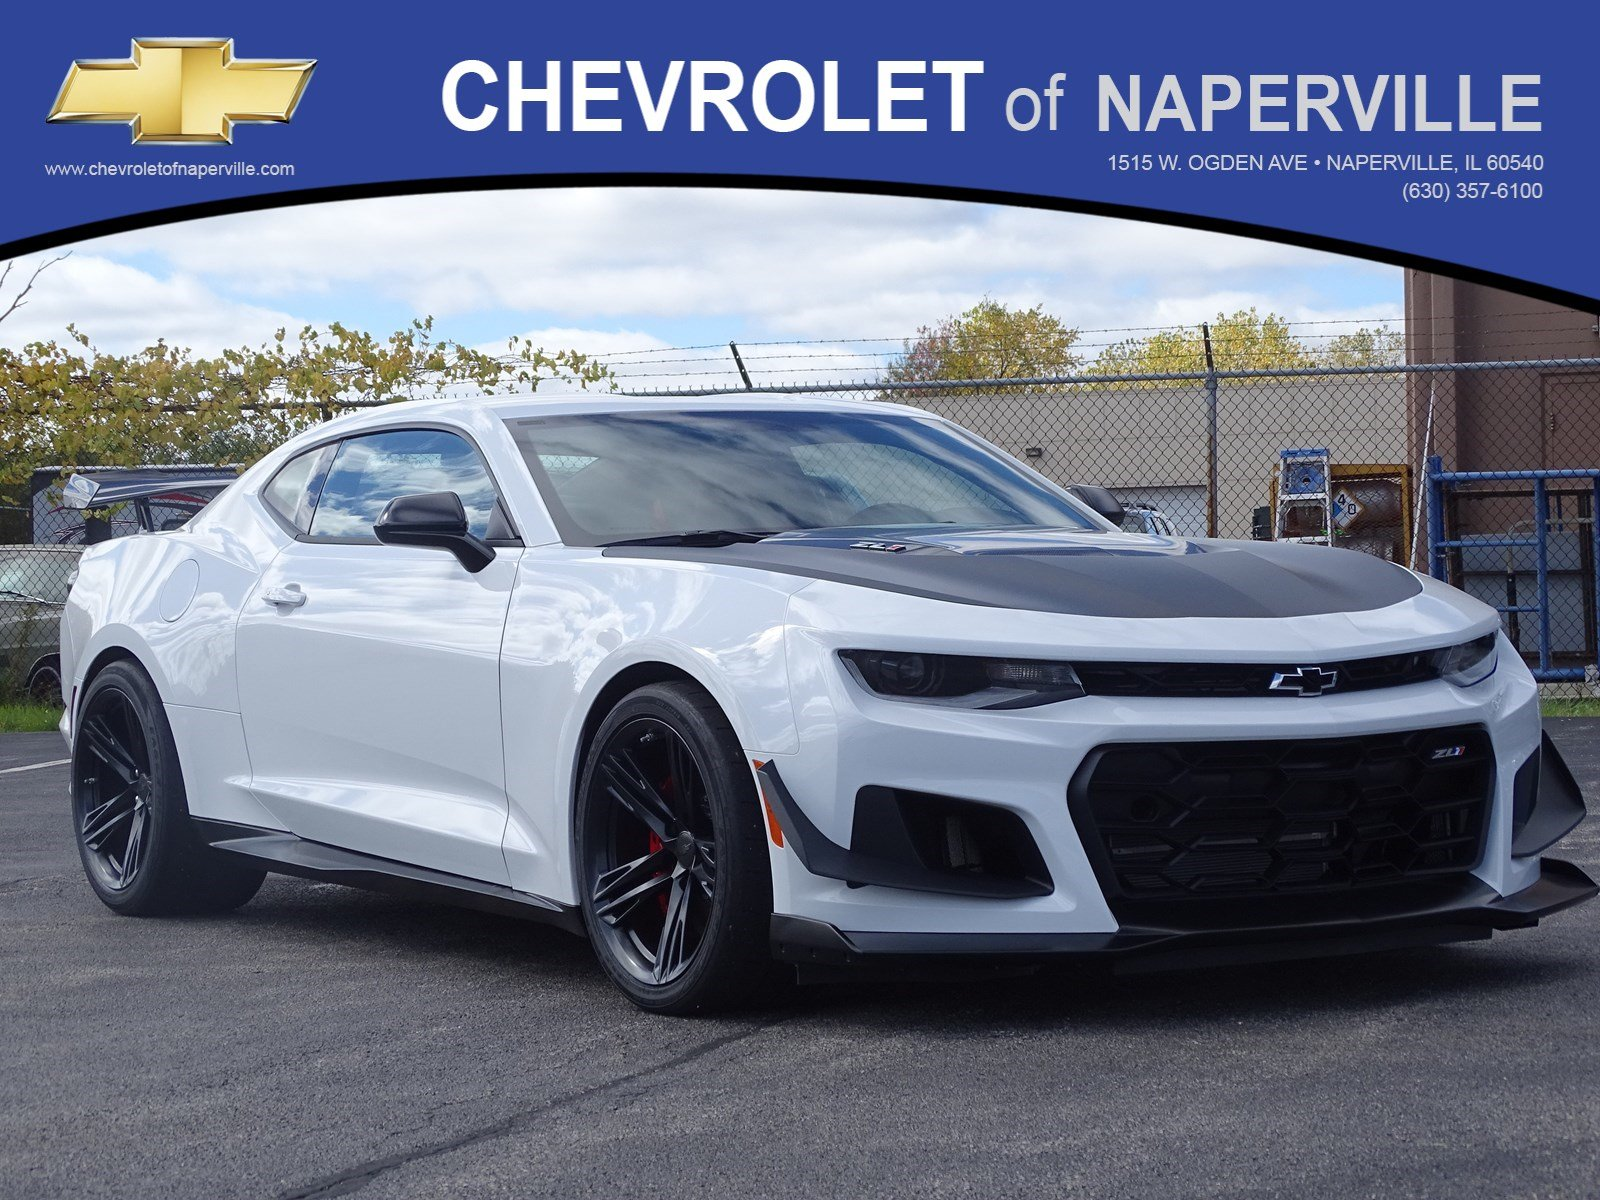 New 2019 Chevrolet Camaro Zl1 2dr Car In Naperville C6129